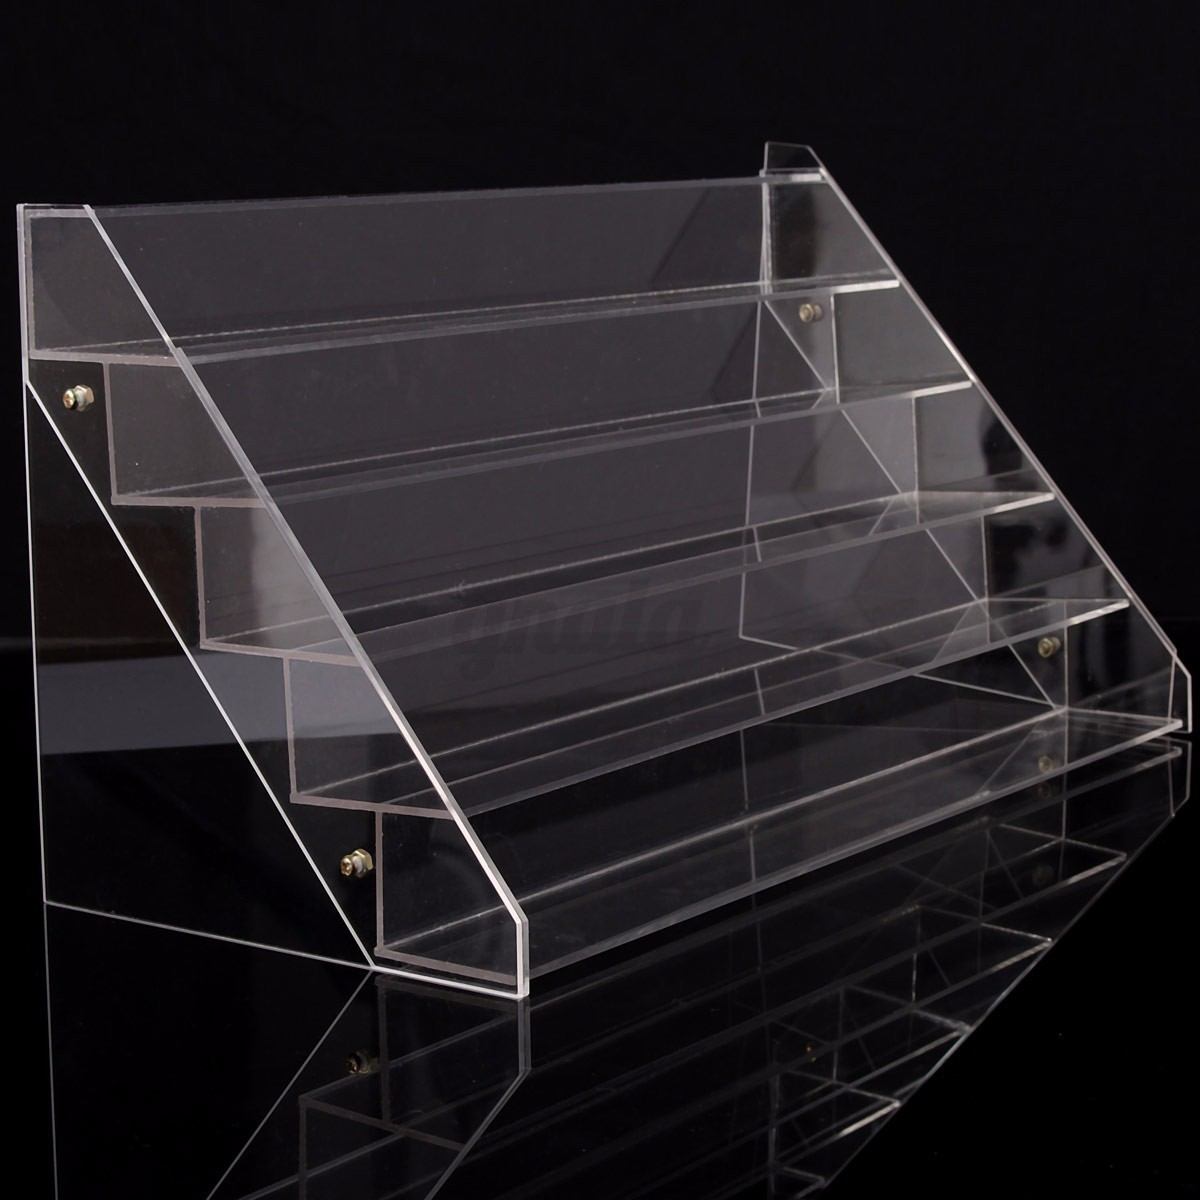 Exhibition Stand Organisers : Acrylic clear makeup nail polish storage organizer rack